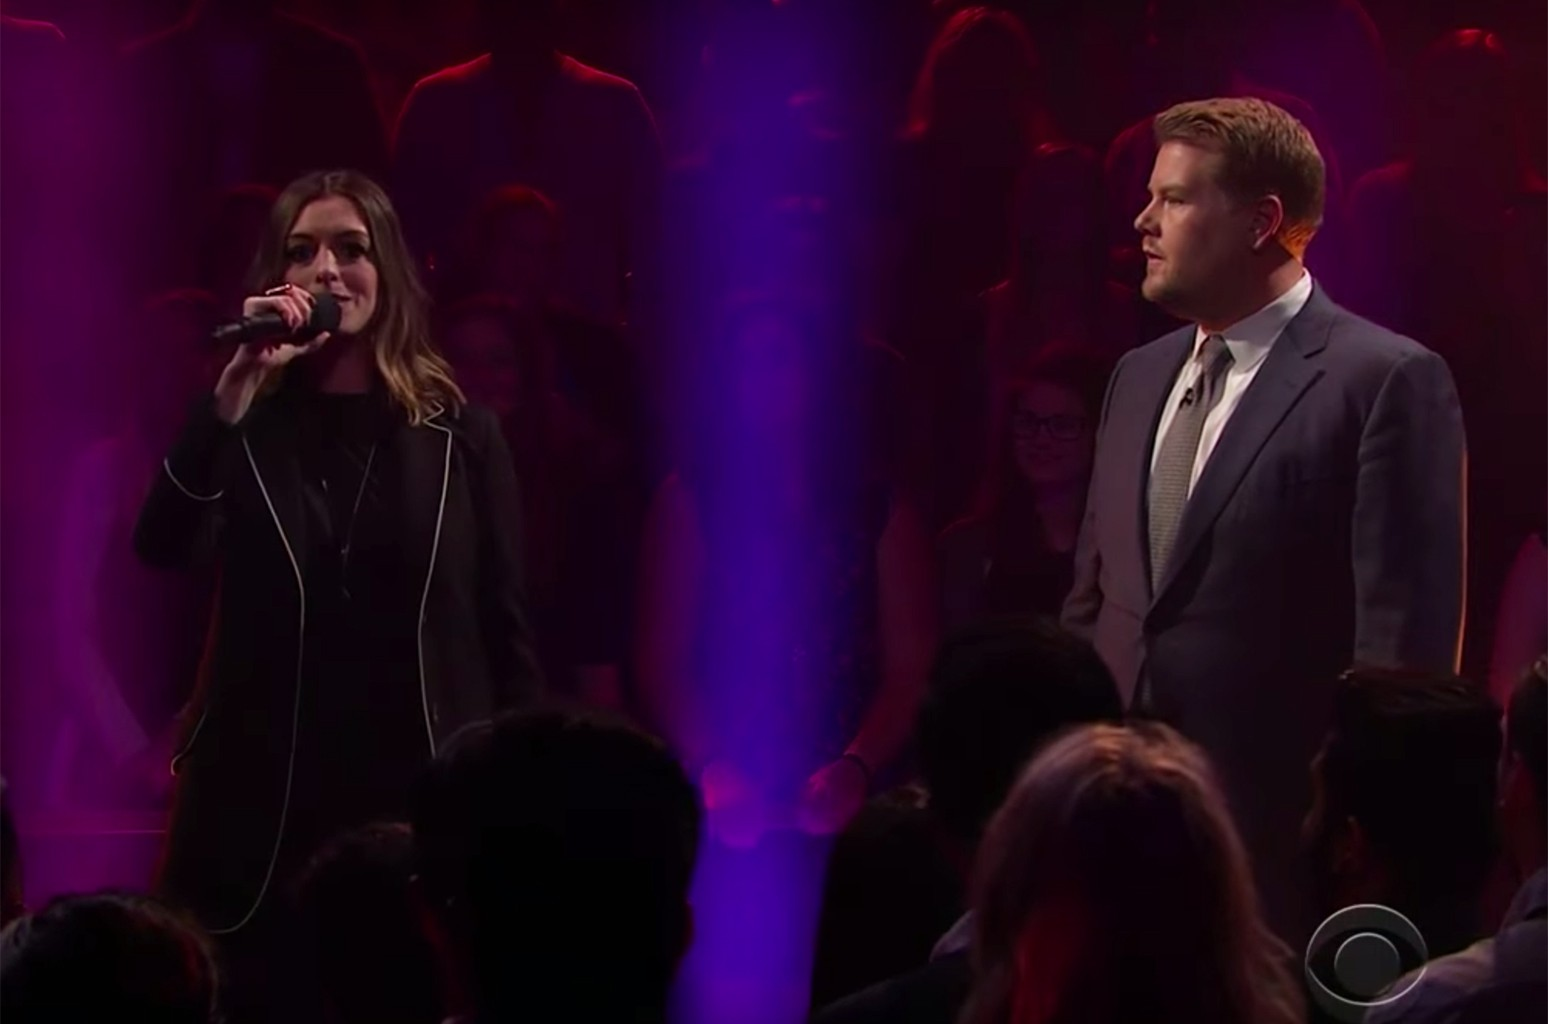 Anne Hathaway on The Late Late Show with James Corden.